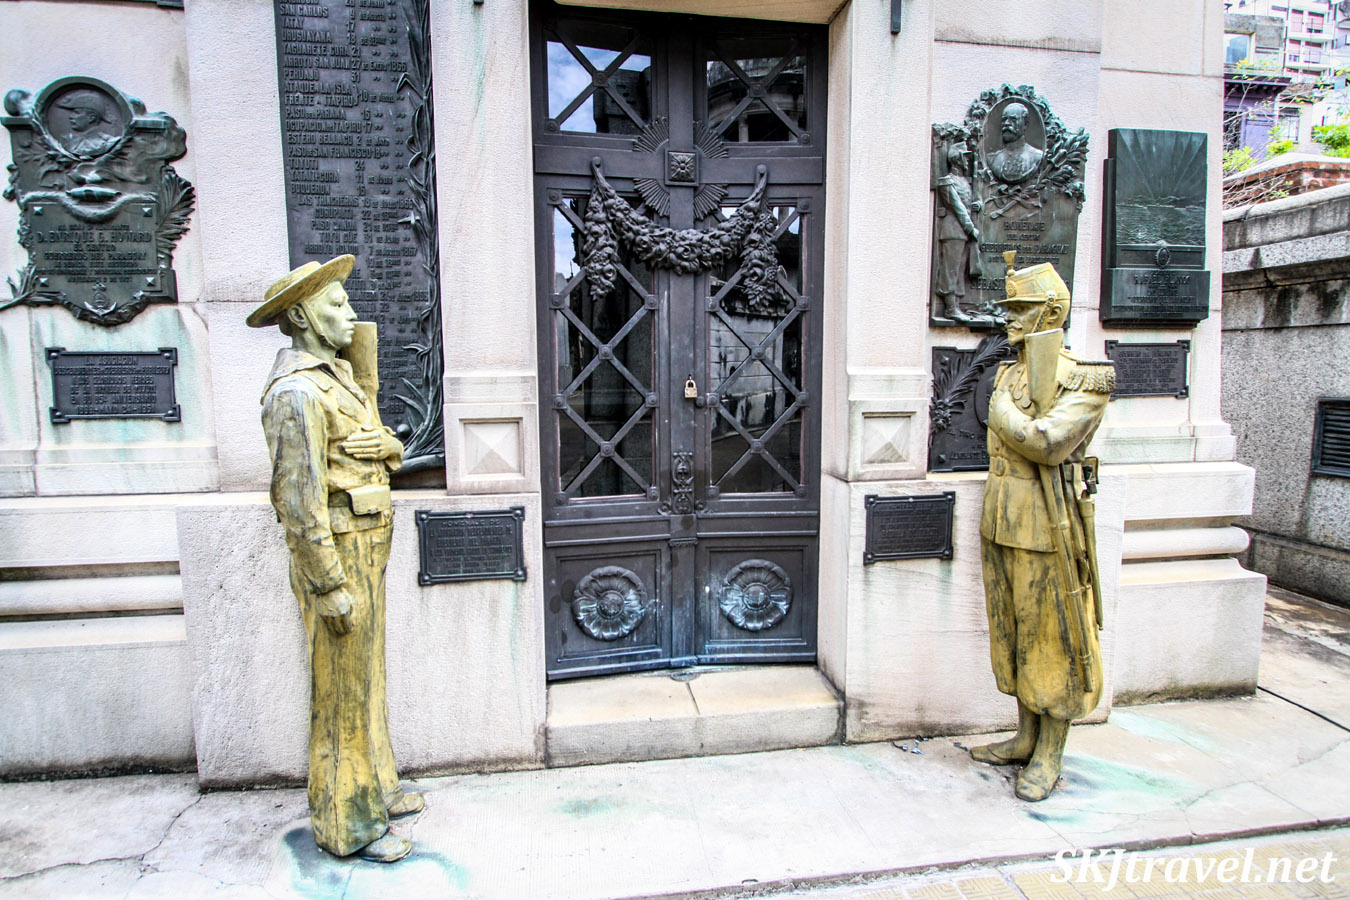 Bronze statues outside a large mausoleum in Recoleta Cemetery, Buenos Aires, Argentina.